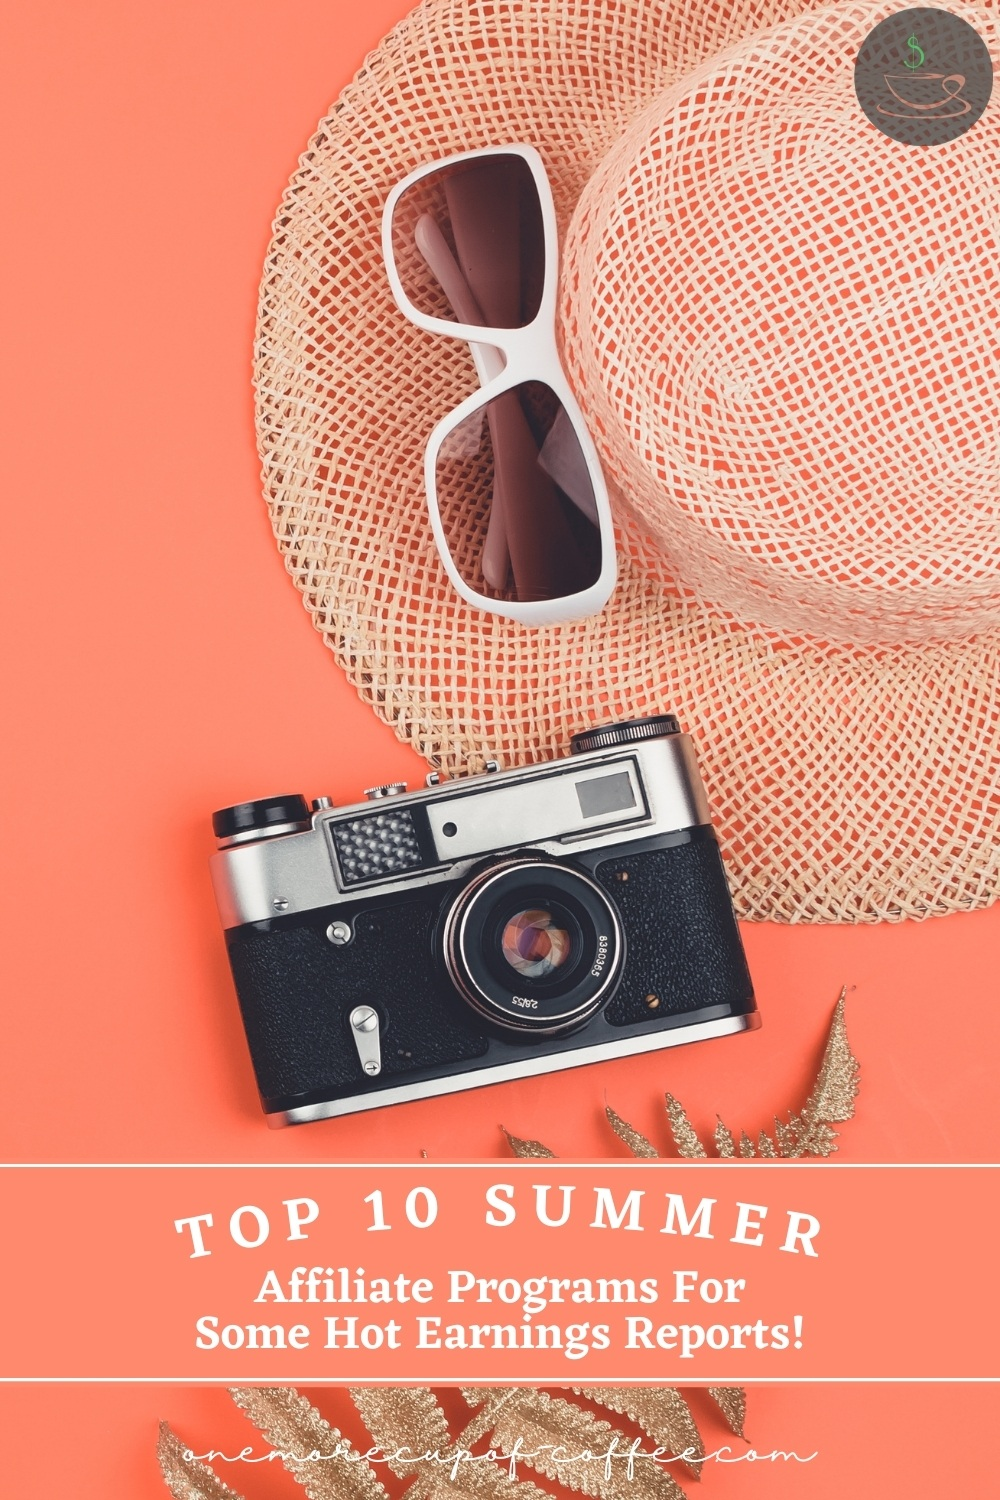 """top view image of native hat, shades, and camera against an orange background; with text overlay """"Top 10 Summer Affiliate Programs For Some Hot Earnings Reports!"""""""